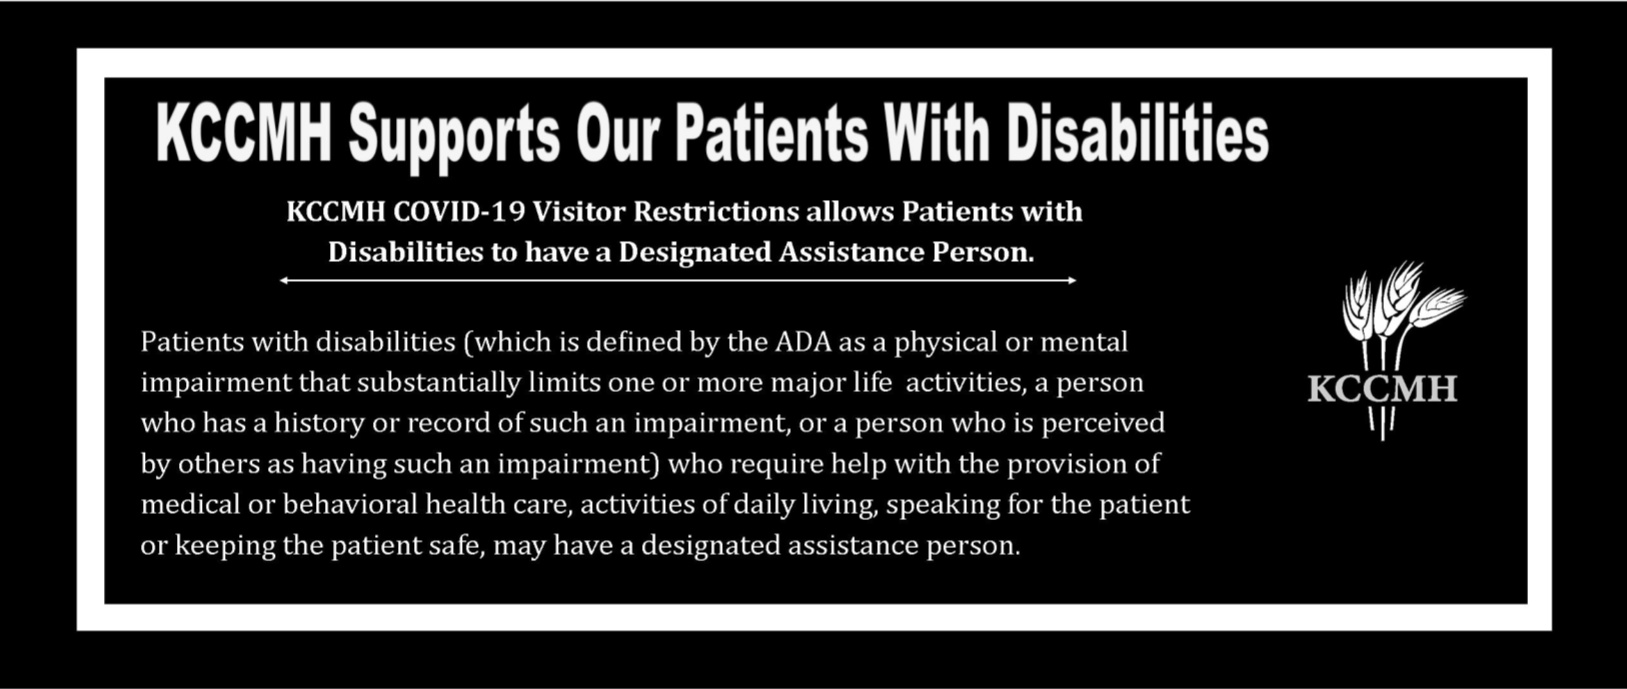 Reminder if anyone has a disability, we are ADA-friendly and their service animal, helper, etc. is allowed to come in with them. They will be subjected to the same rules as everyone else.